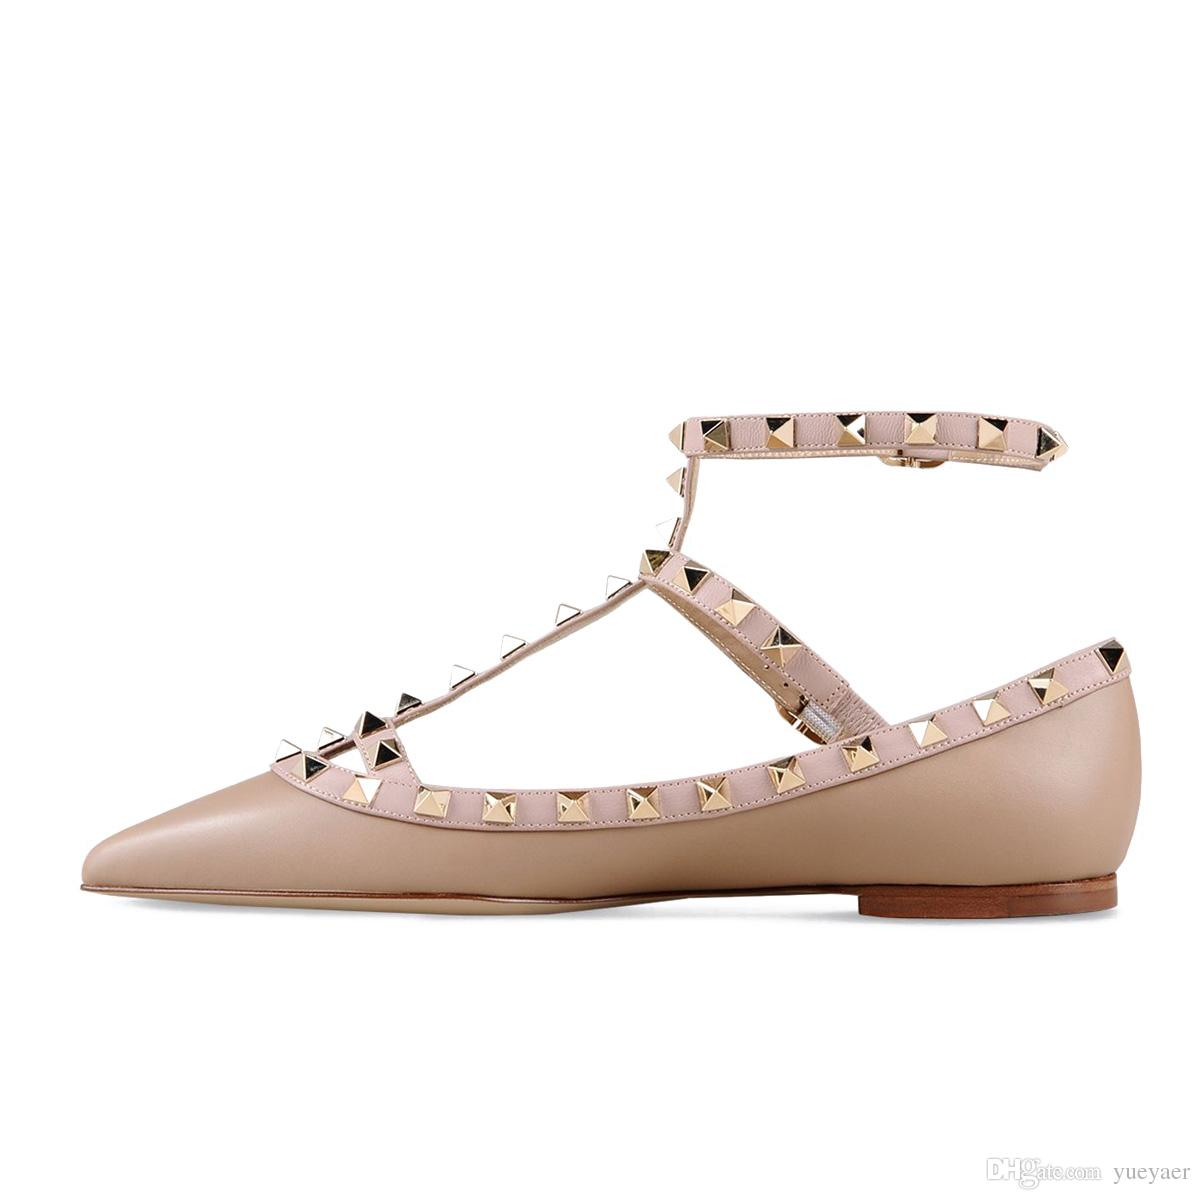 Zandina Women Handcrafted Fashion Ballerina Flat Shoes Pointed Toe T-Strap Flats Pumps Shoes For Party Wedding